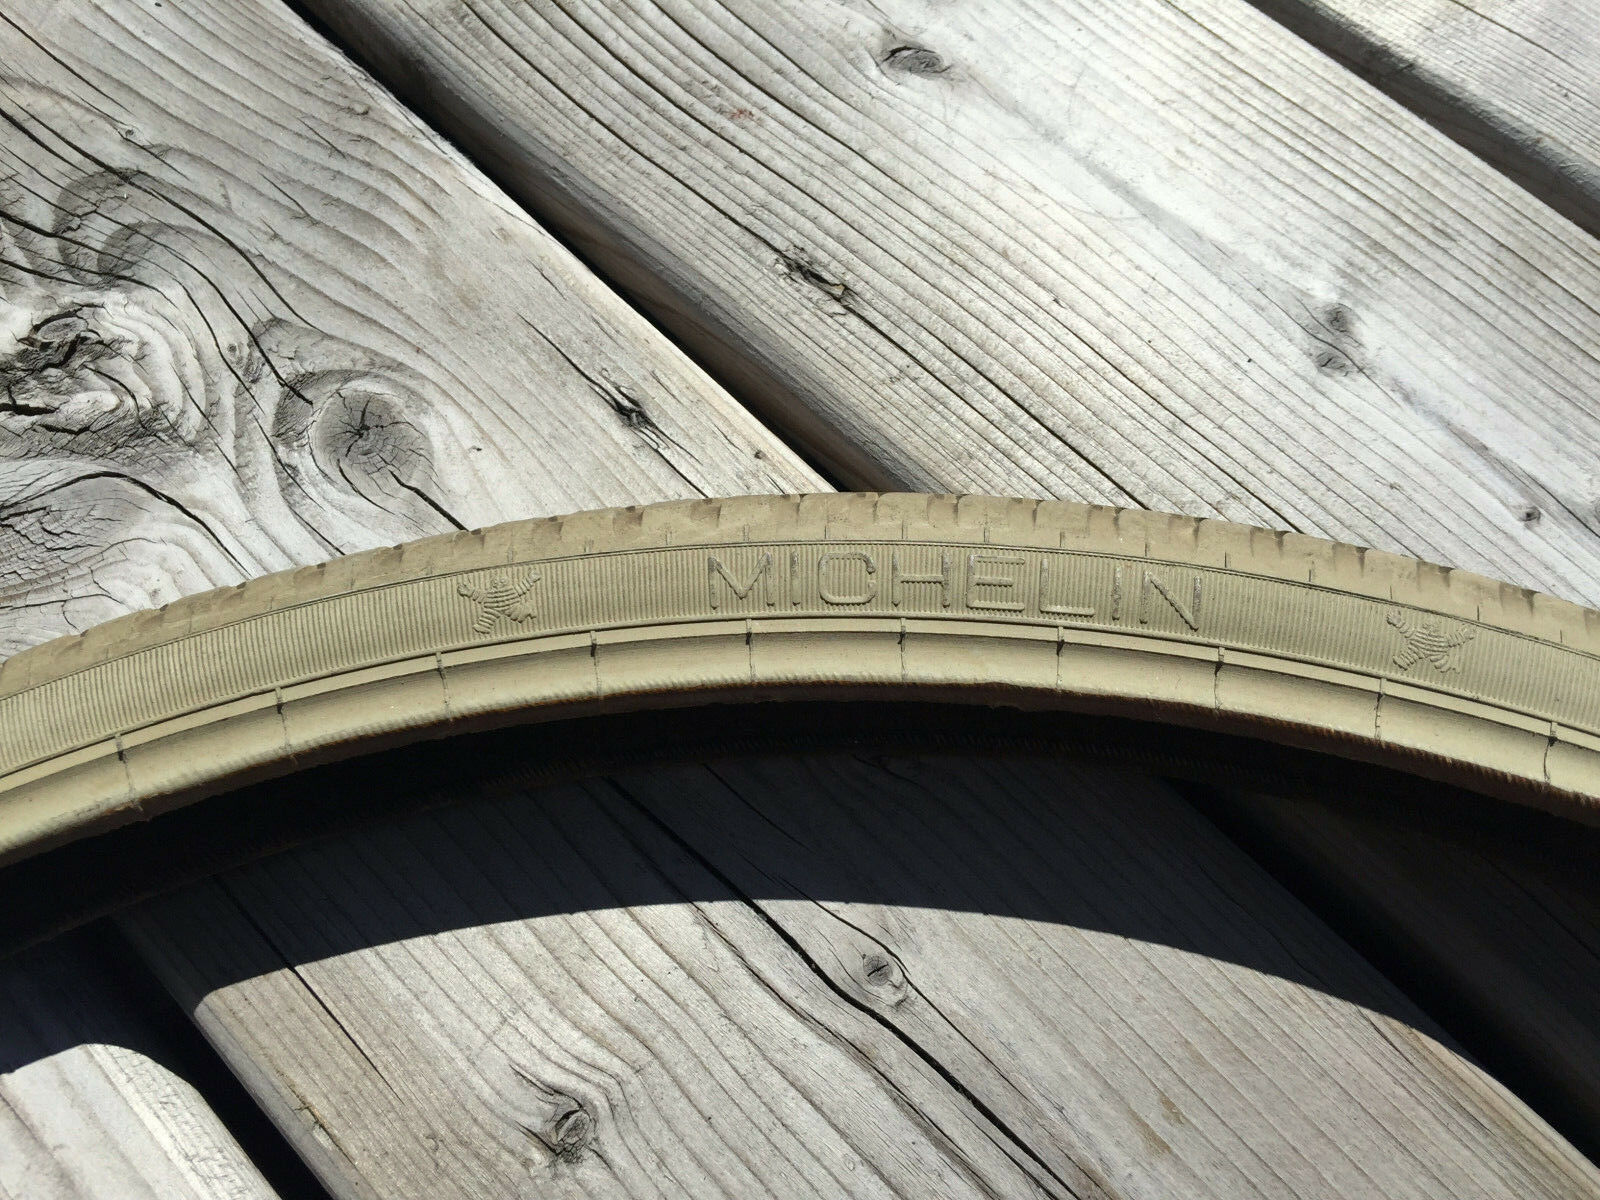 VINTAGE BIKE MICHELIN 22 X 1-3 8 UNIVERSAL TIRE MADE IN ENGLAND 37-501 NOS NEW